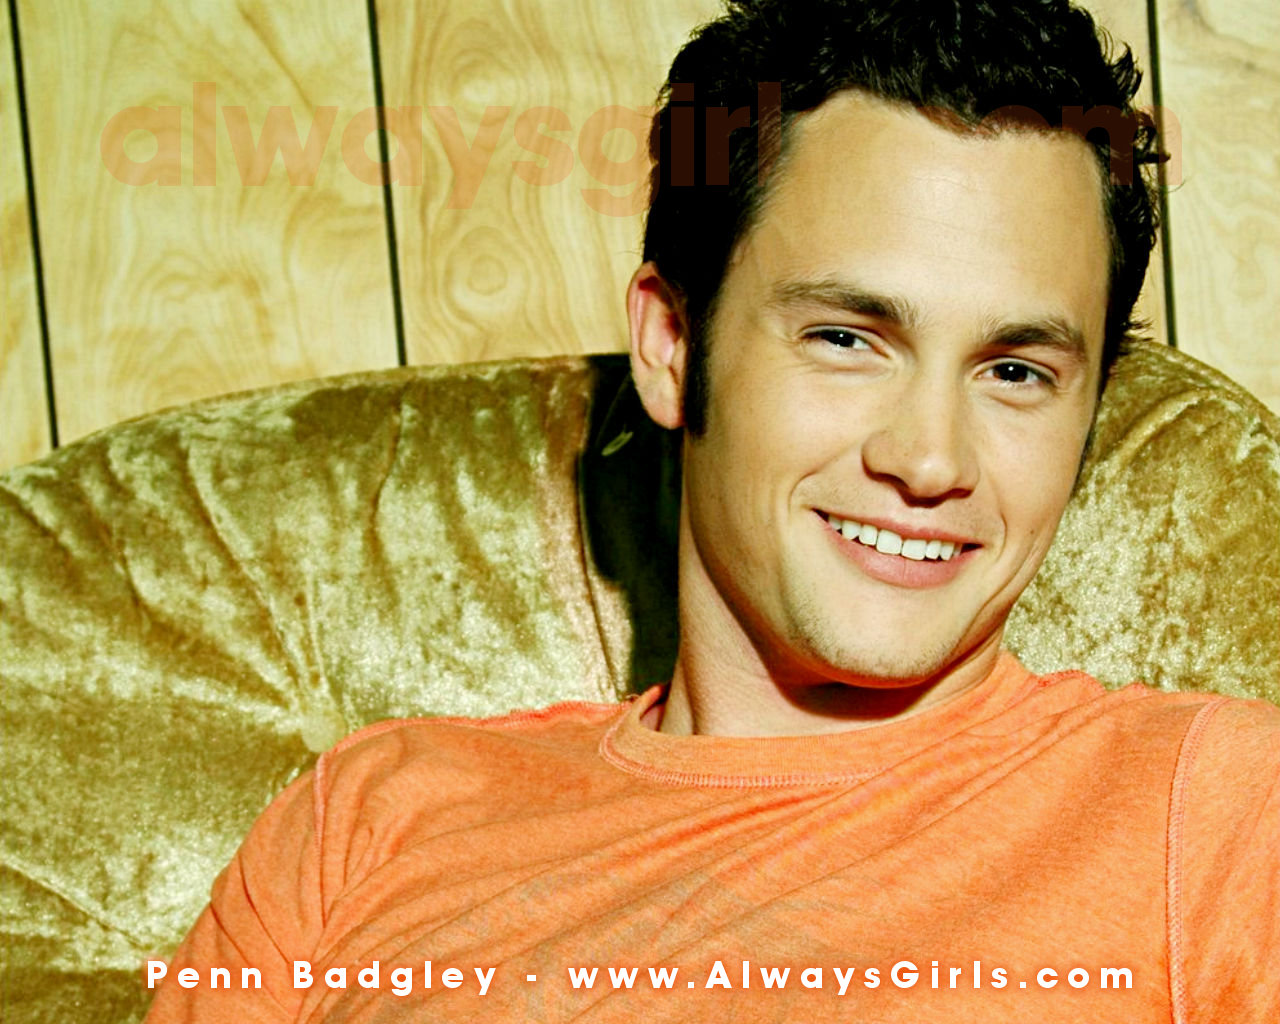 Penn Badgley Wallpapers Tiffany Best penn badgley wallpaper hd